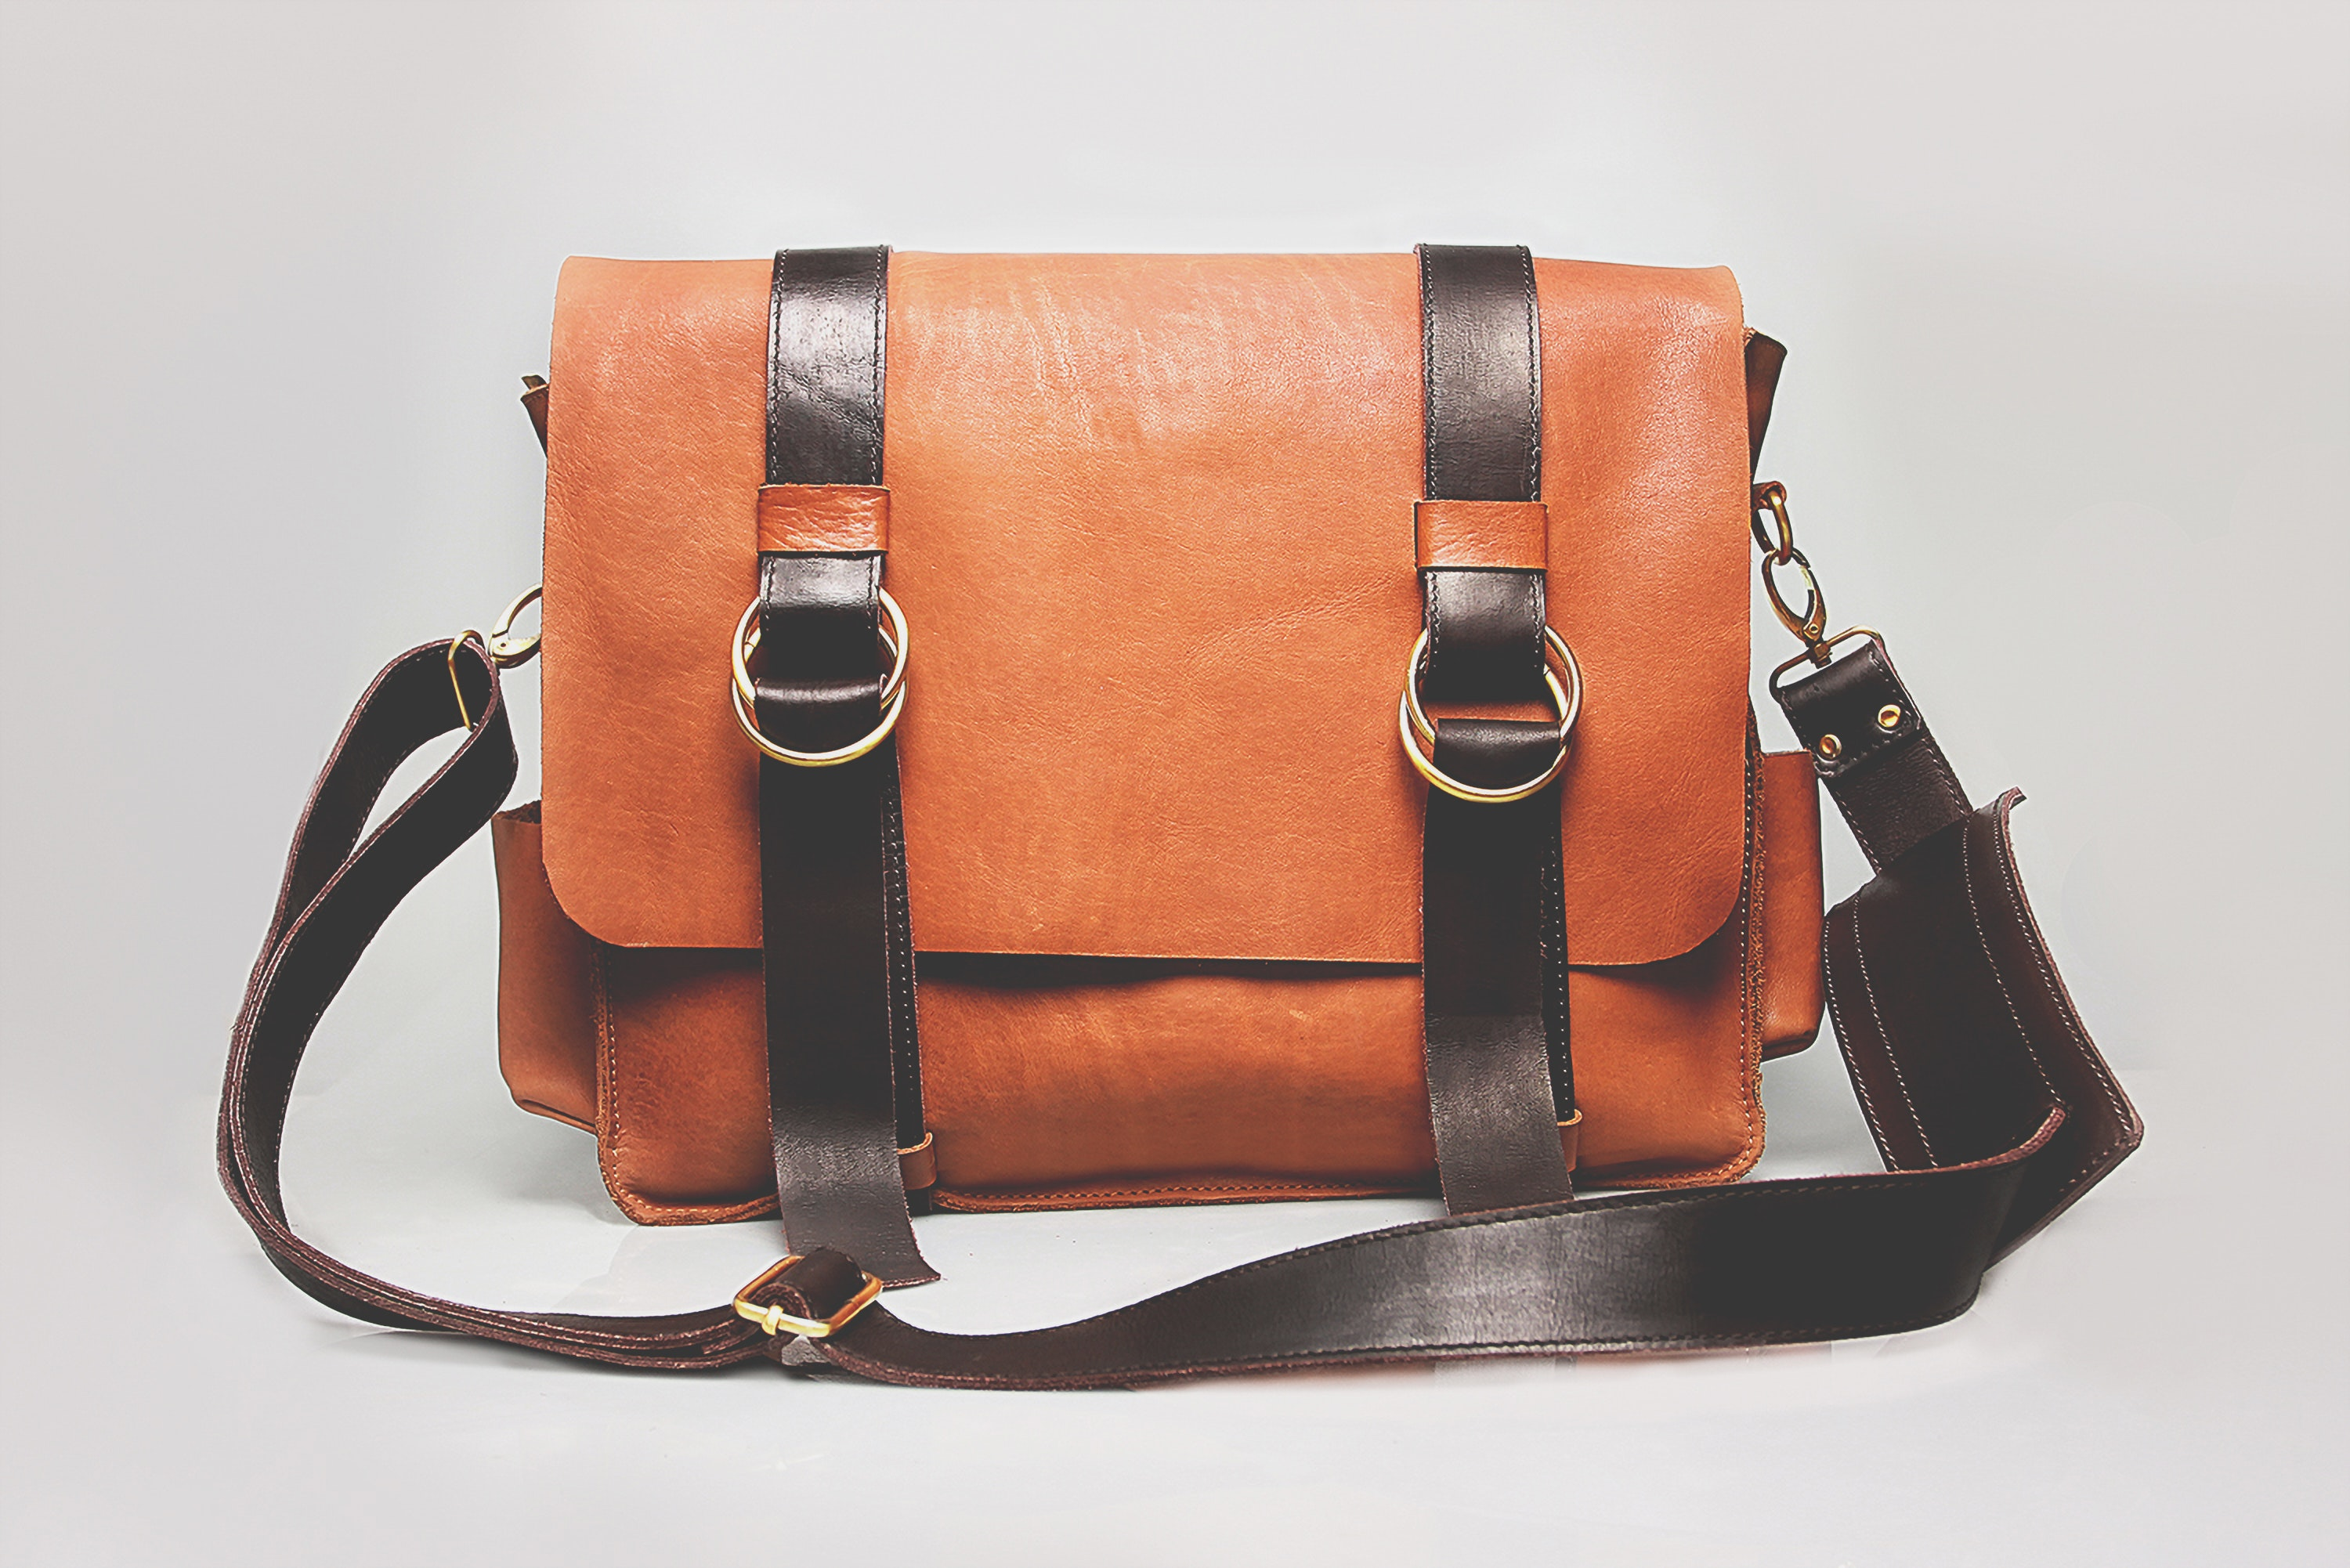 Damaged Leather bag repairing by Machine